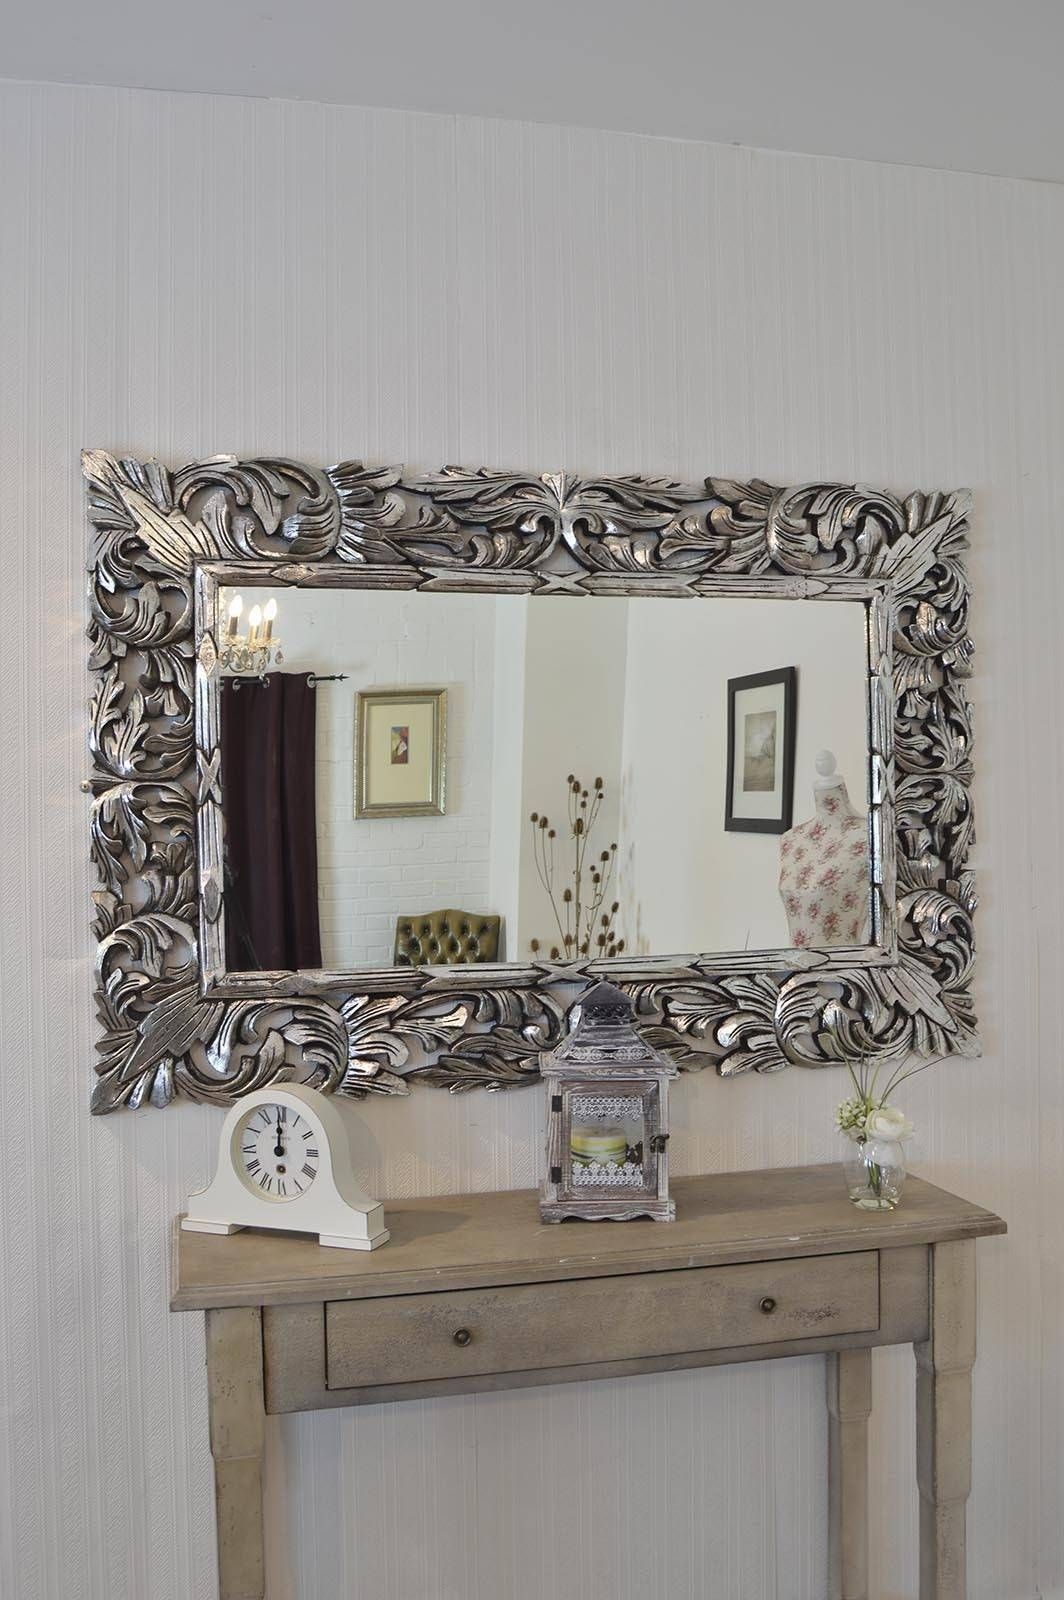 The best silver ornate wall mirrors large silver wall mirror 57 nice decorating with large ornate wall in silver ornate wall mirrors amipublicfo Choice Image